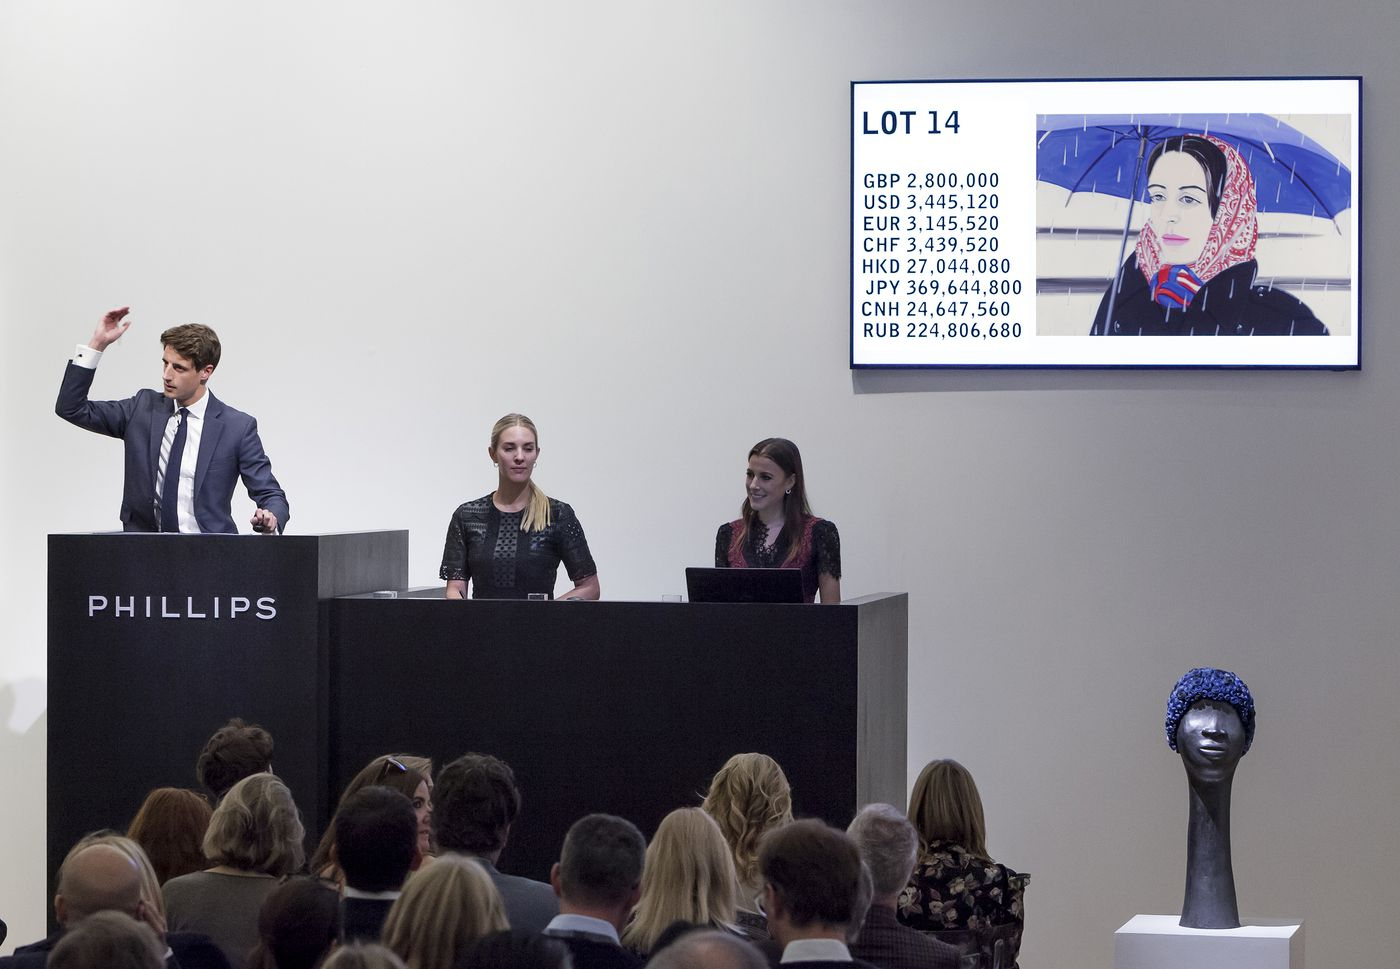 Offering strong contemporary works with international caché, Phillips realizes over £35 million across Evening and Day Sales.